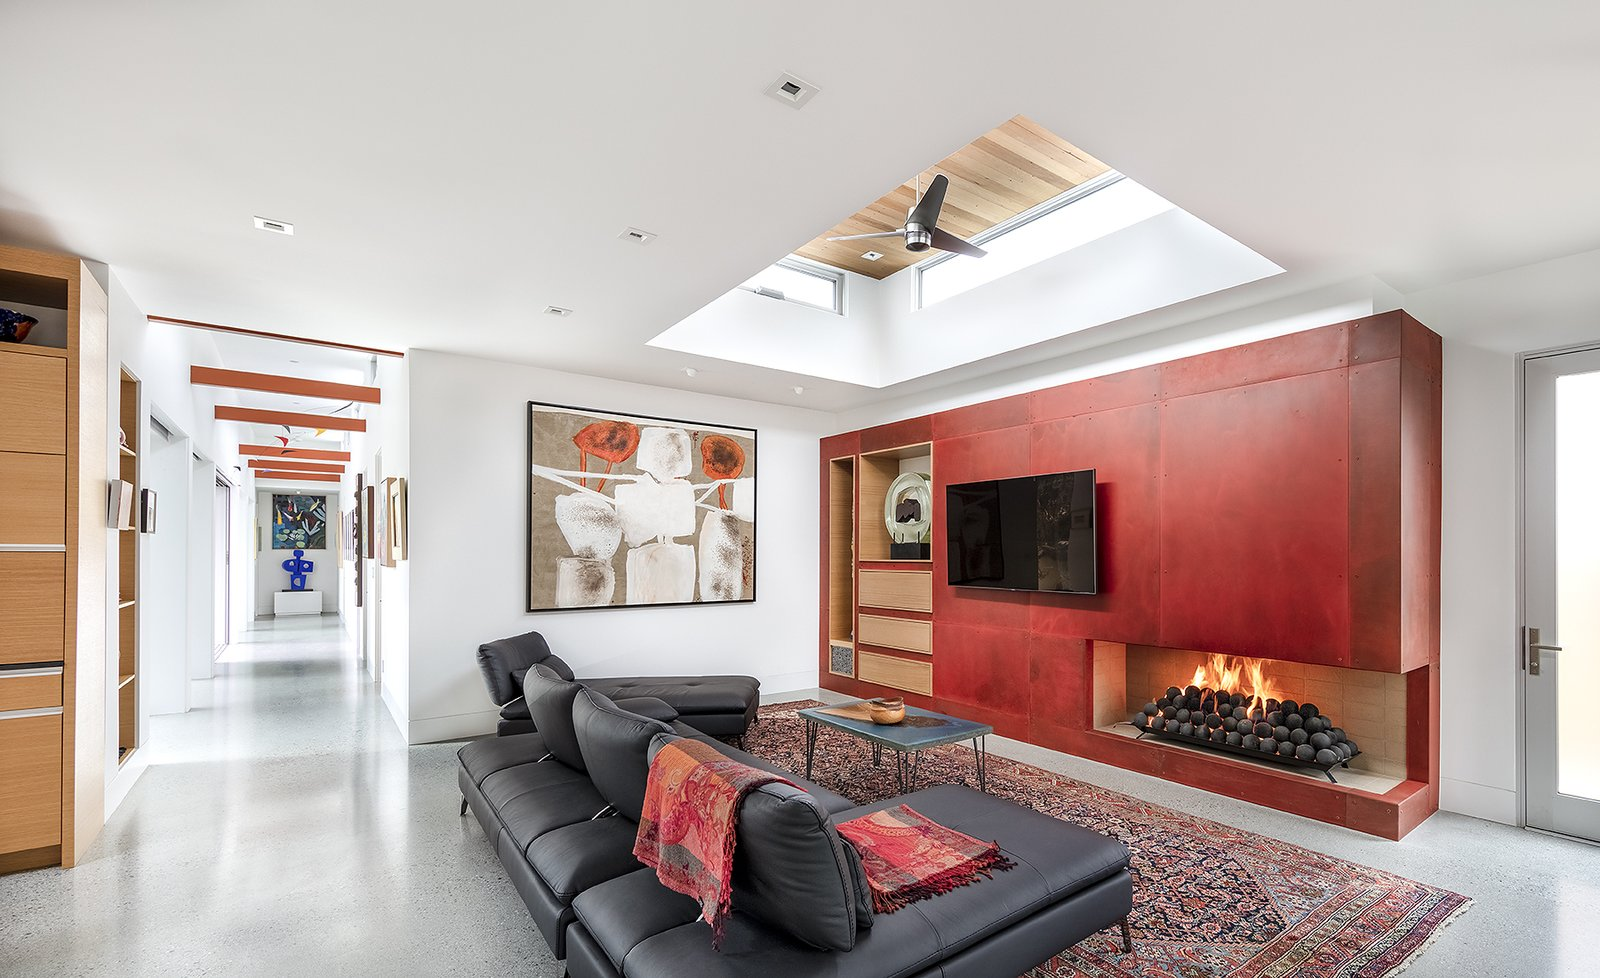 Living Room, Sectional, Accent Lighting, Recessed Lighting, Gas Burning Fireplace, Coffee Tables, Concrete Floor, and Two-Sided Fireplace The fireplace wall is an acid washed and stained steel wrap.  Oak Street by Rossington Architecture